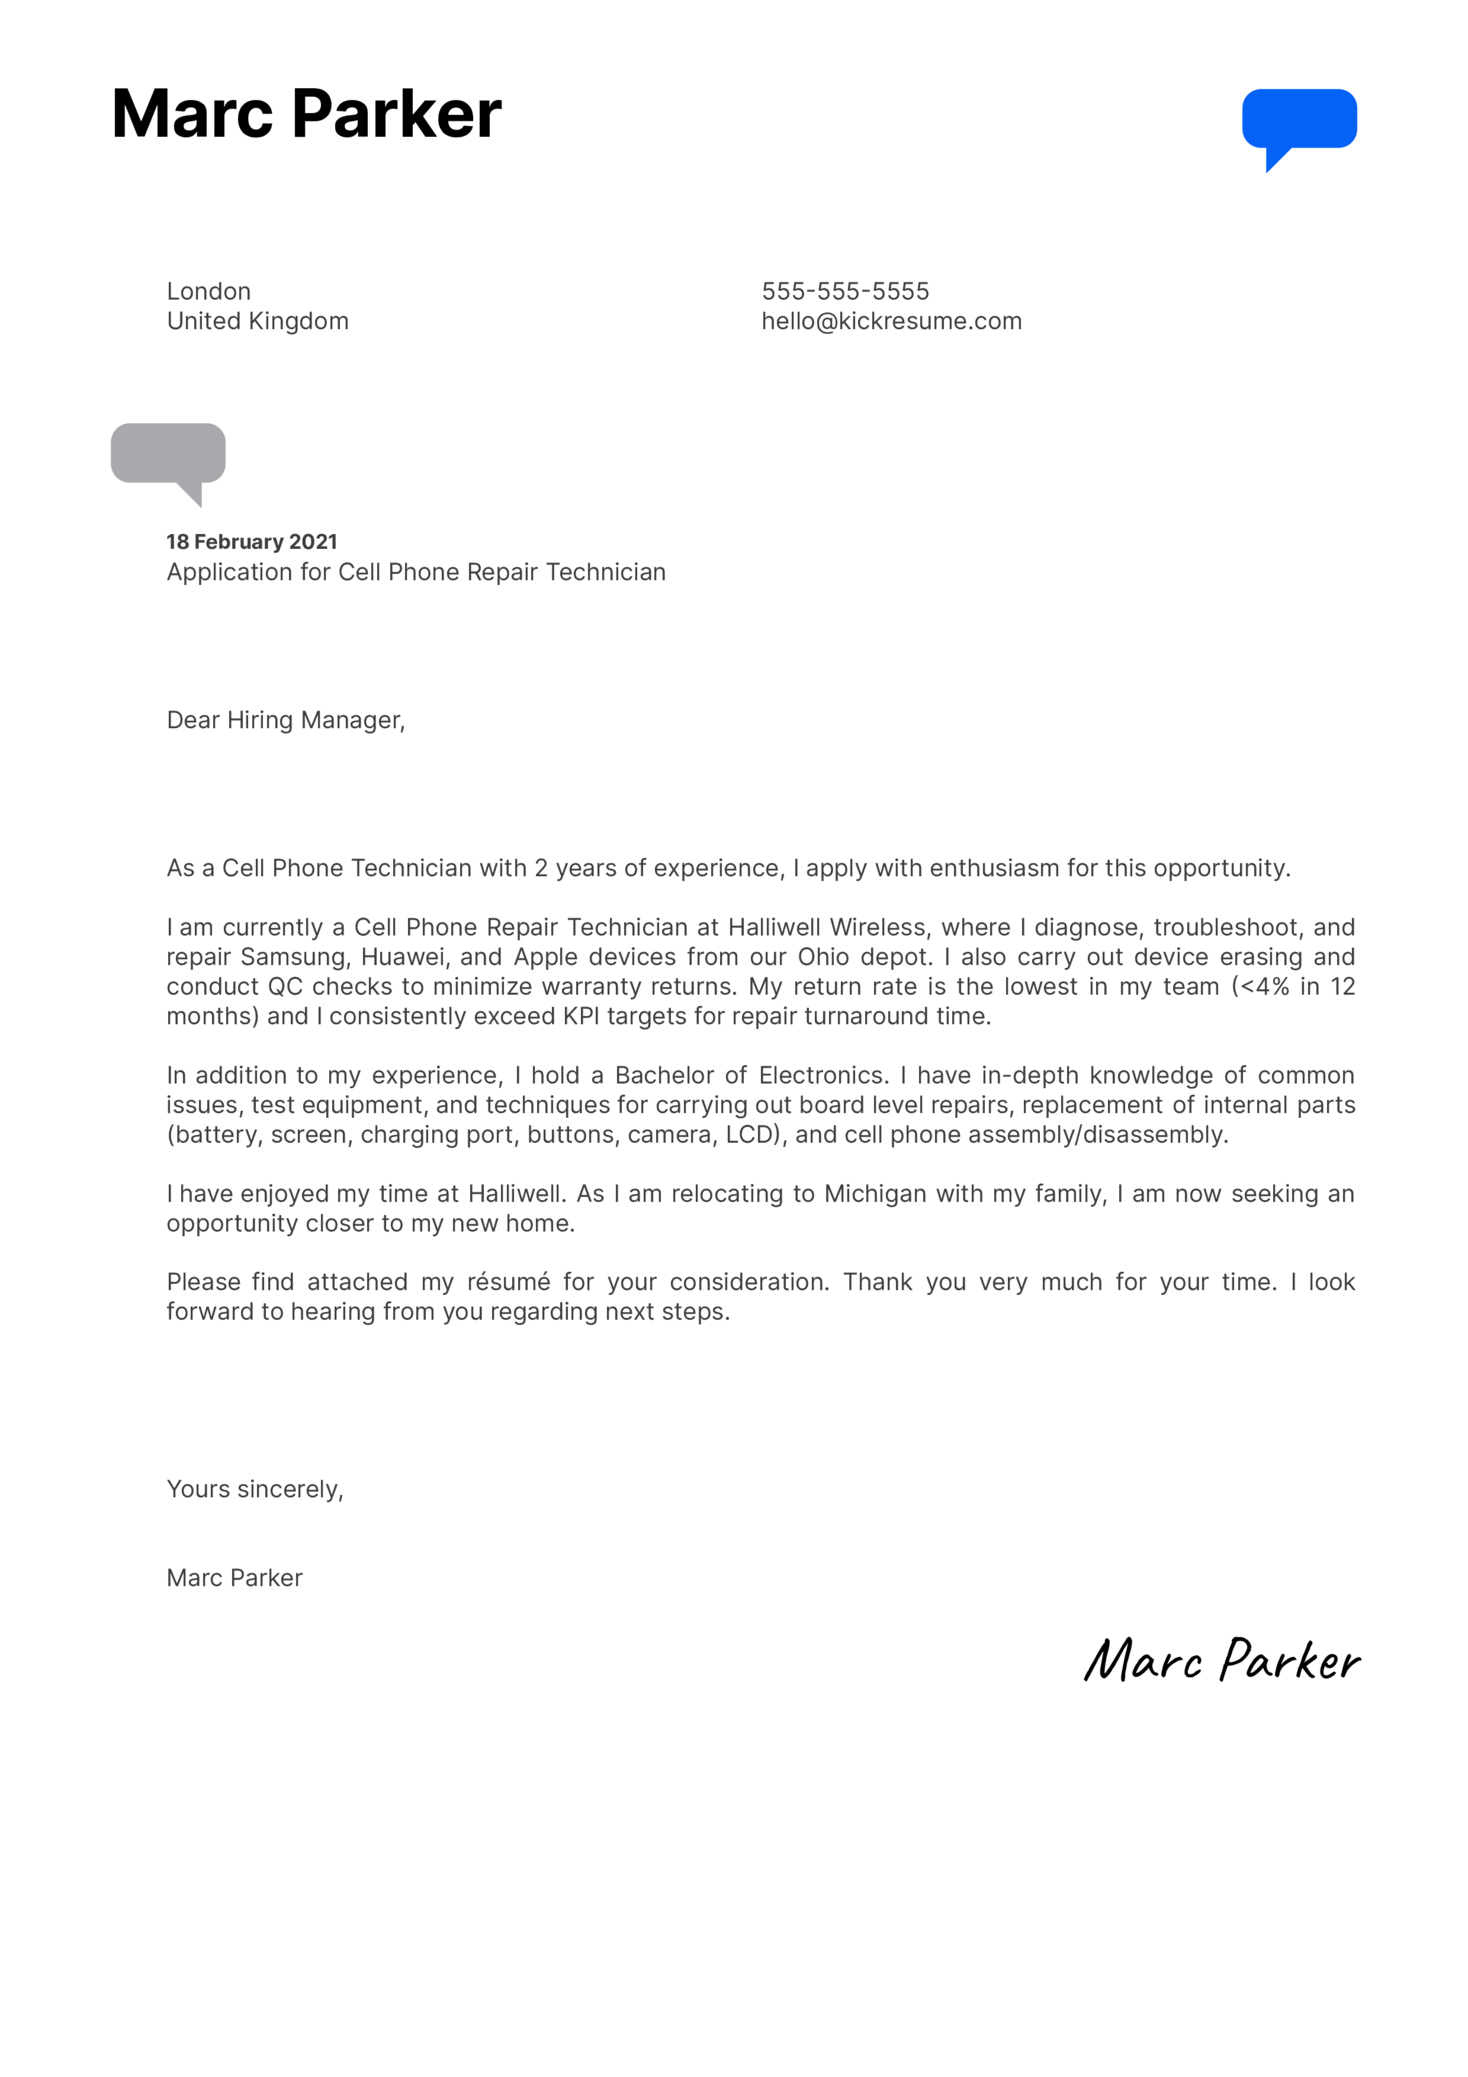 Cell Phone Repair Technician Cover Letter Sample